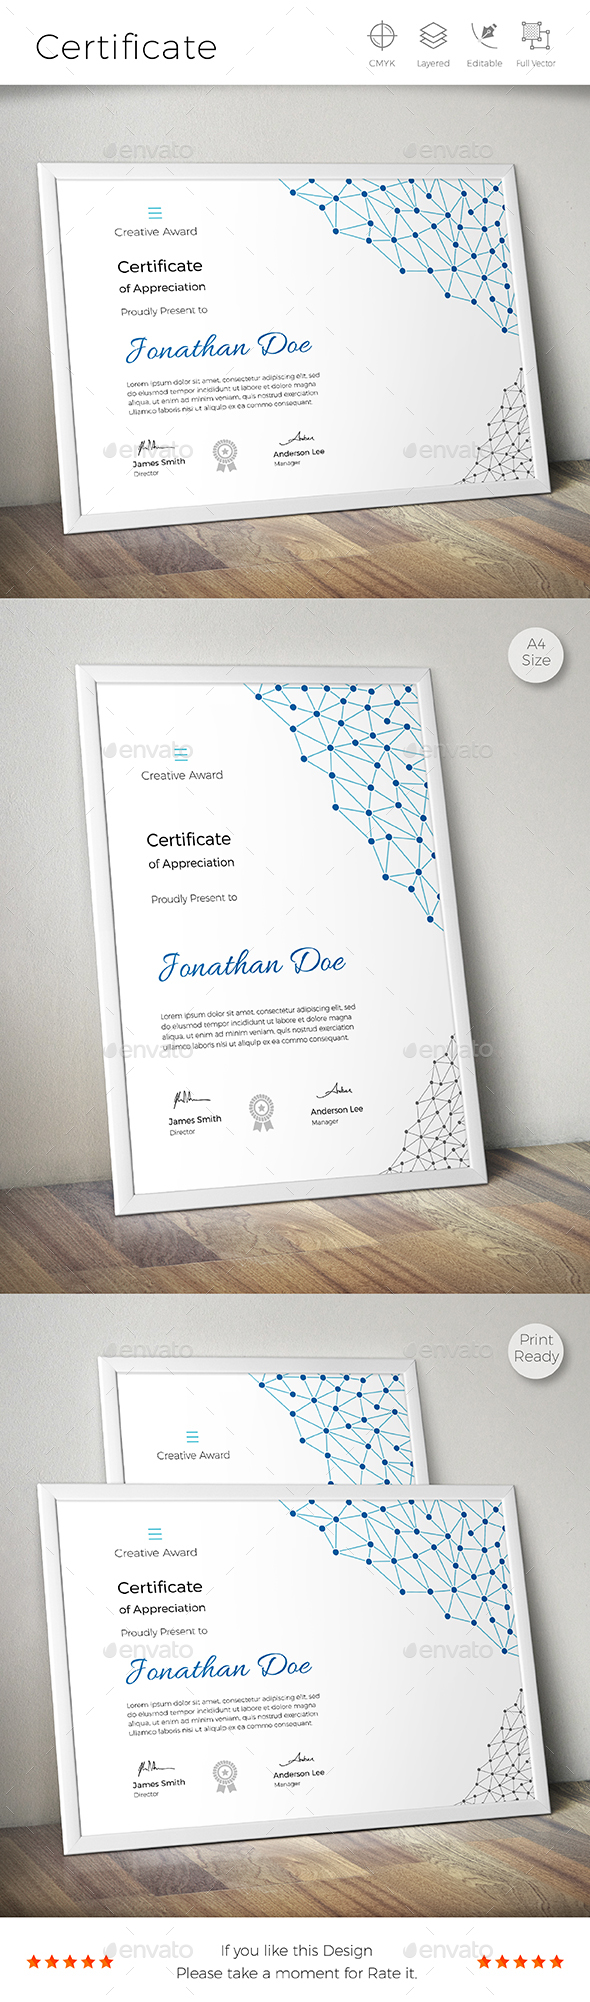 Certificate certificate template and certificate design buy certificate by creativeracer on graphicriver a great creative multipurpose certificate template for creative person features easy to edit cmyk color 1betcityfo Gallery